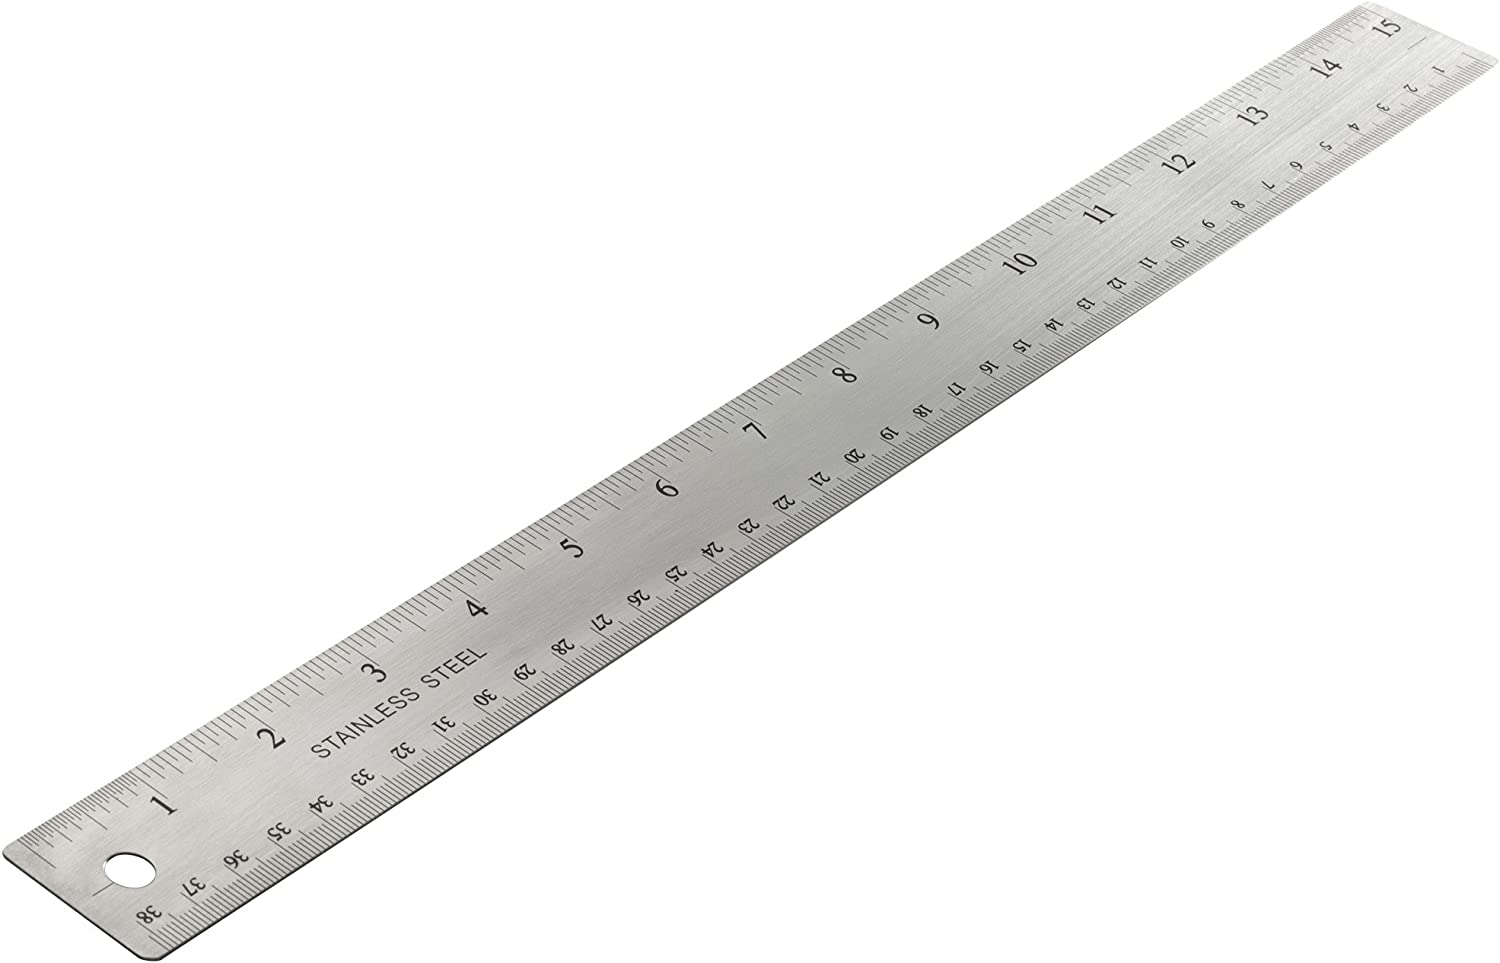 Officemate OIC Classic Stainless Steel Metal Ruler, 15 inches with Metric Measurements (66612)